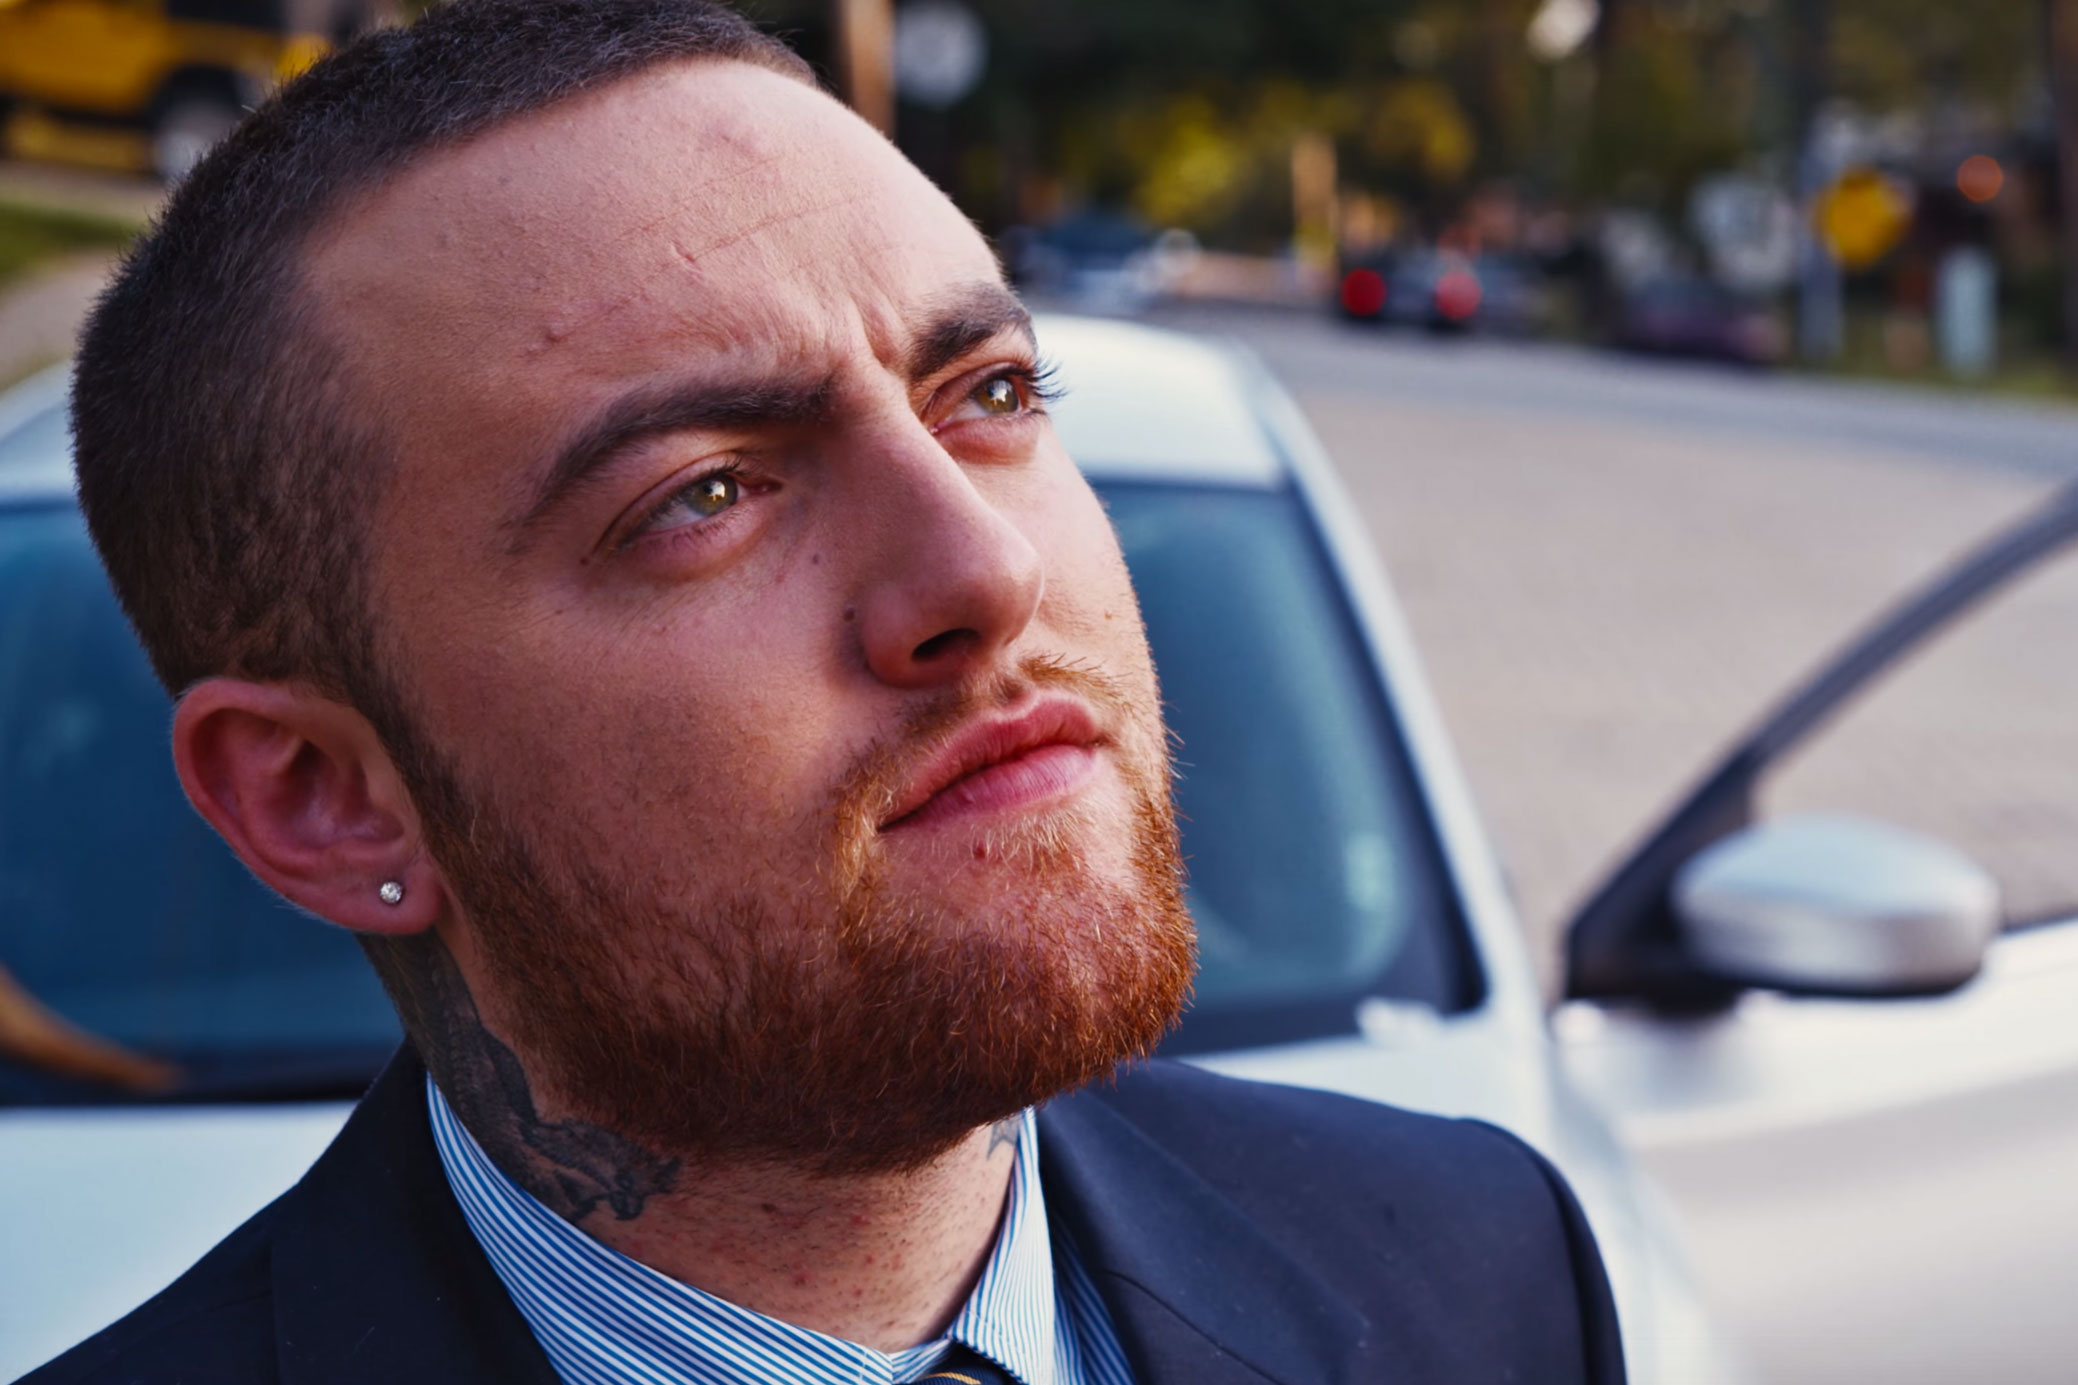 Mac Miller born Malcolm McCormick and also known as Larry Fisherman is a rapper and producer from Pittsburgh Pennsylvania While going by various